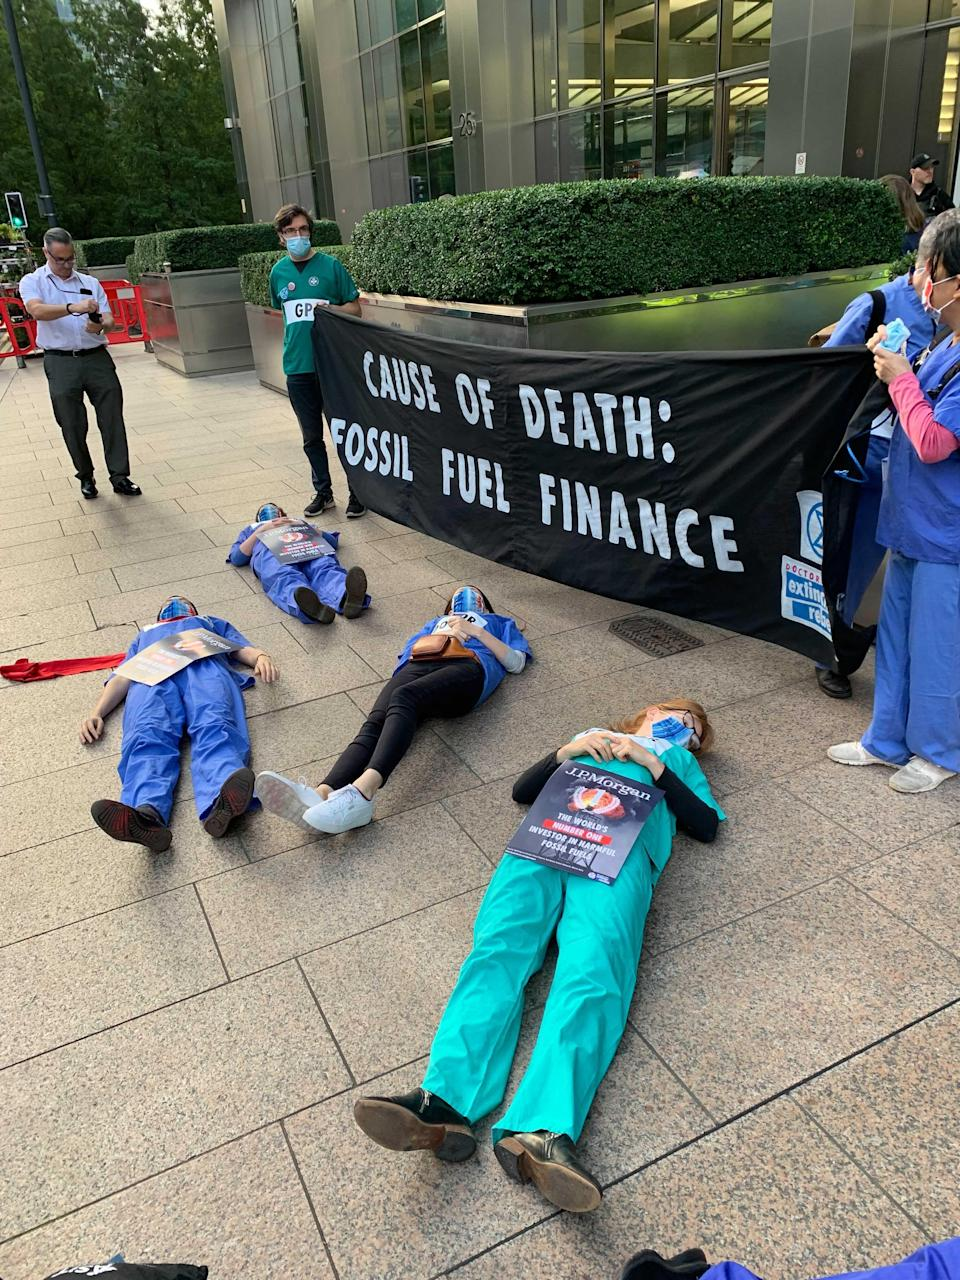 Protesters dressed in their scrubs lay on the floor and held banners in Canary Wharf (The Independent)